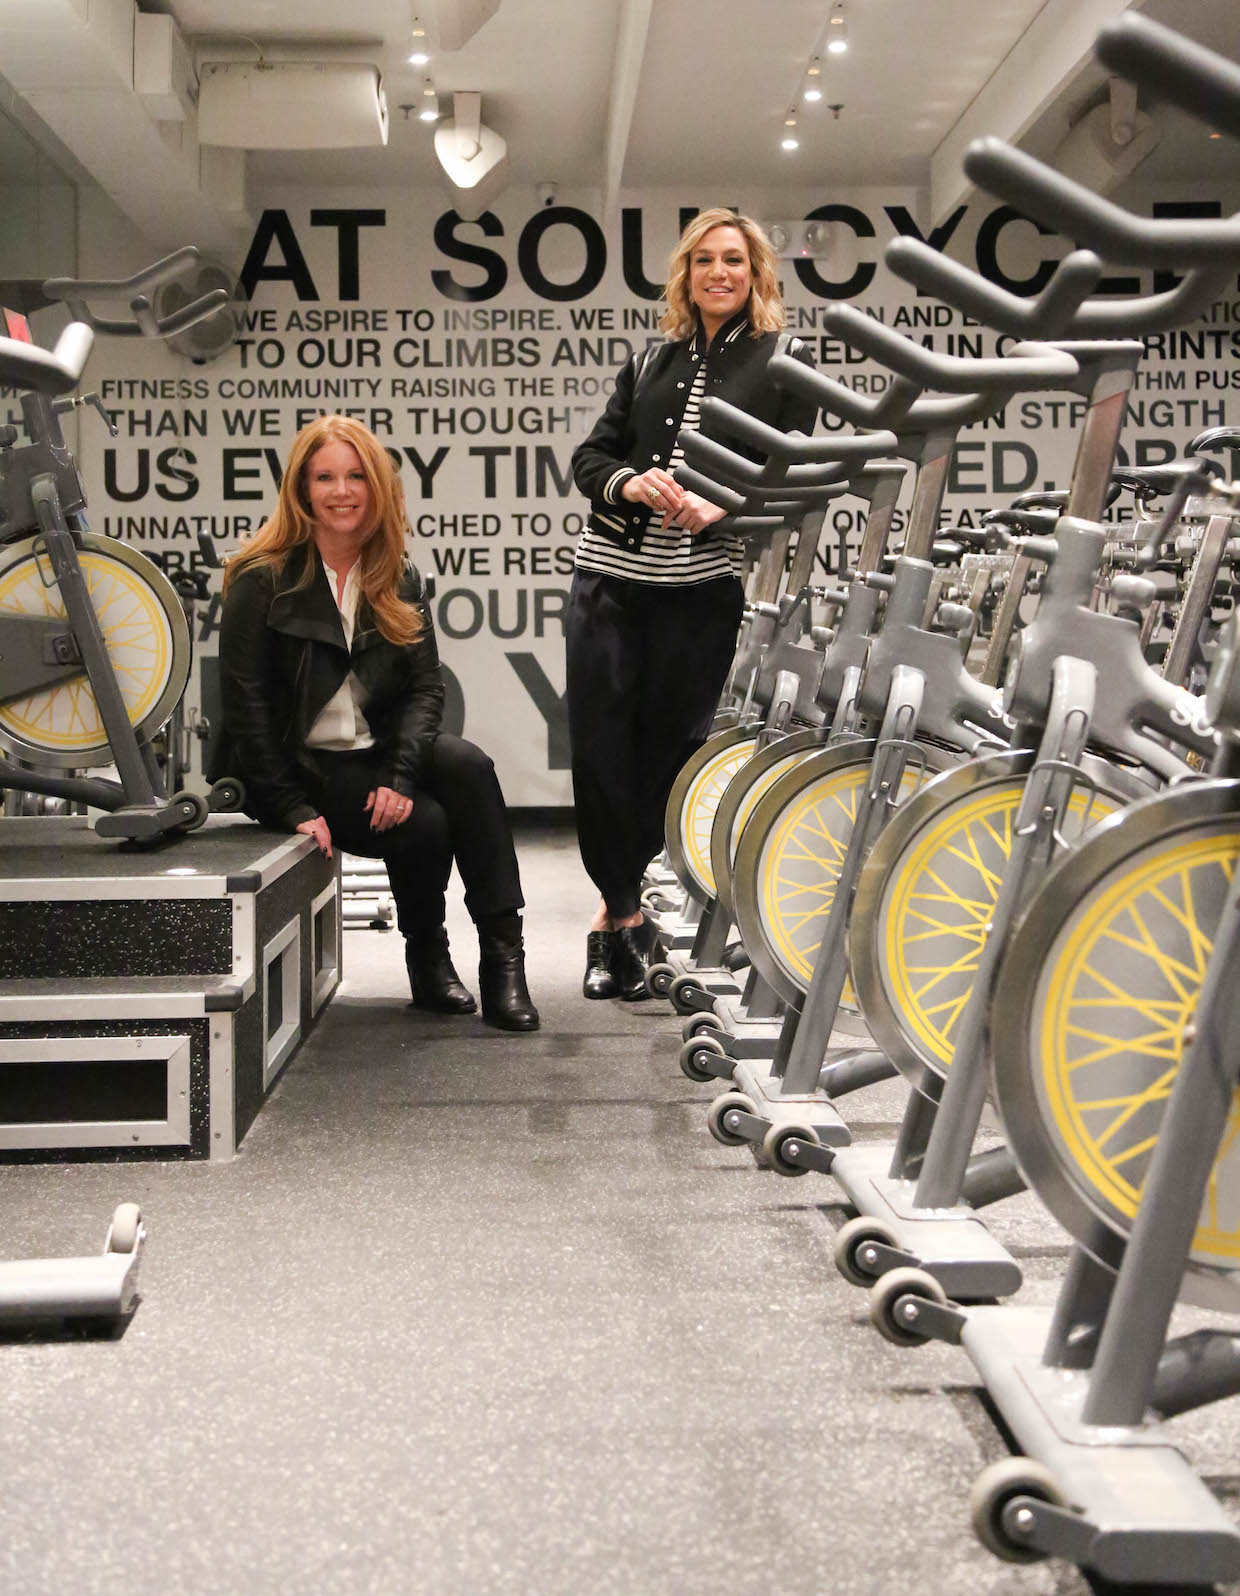 soulcycle workout and diet